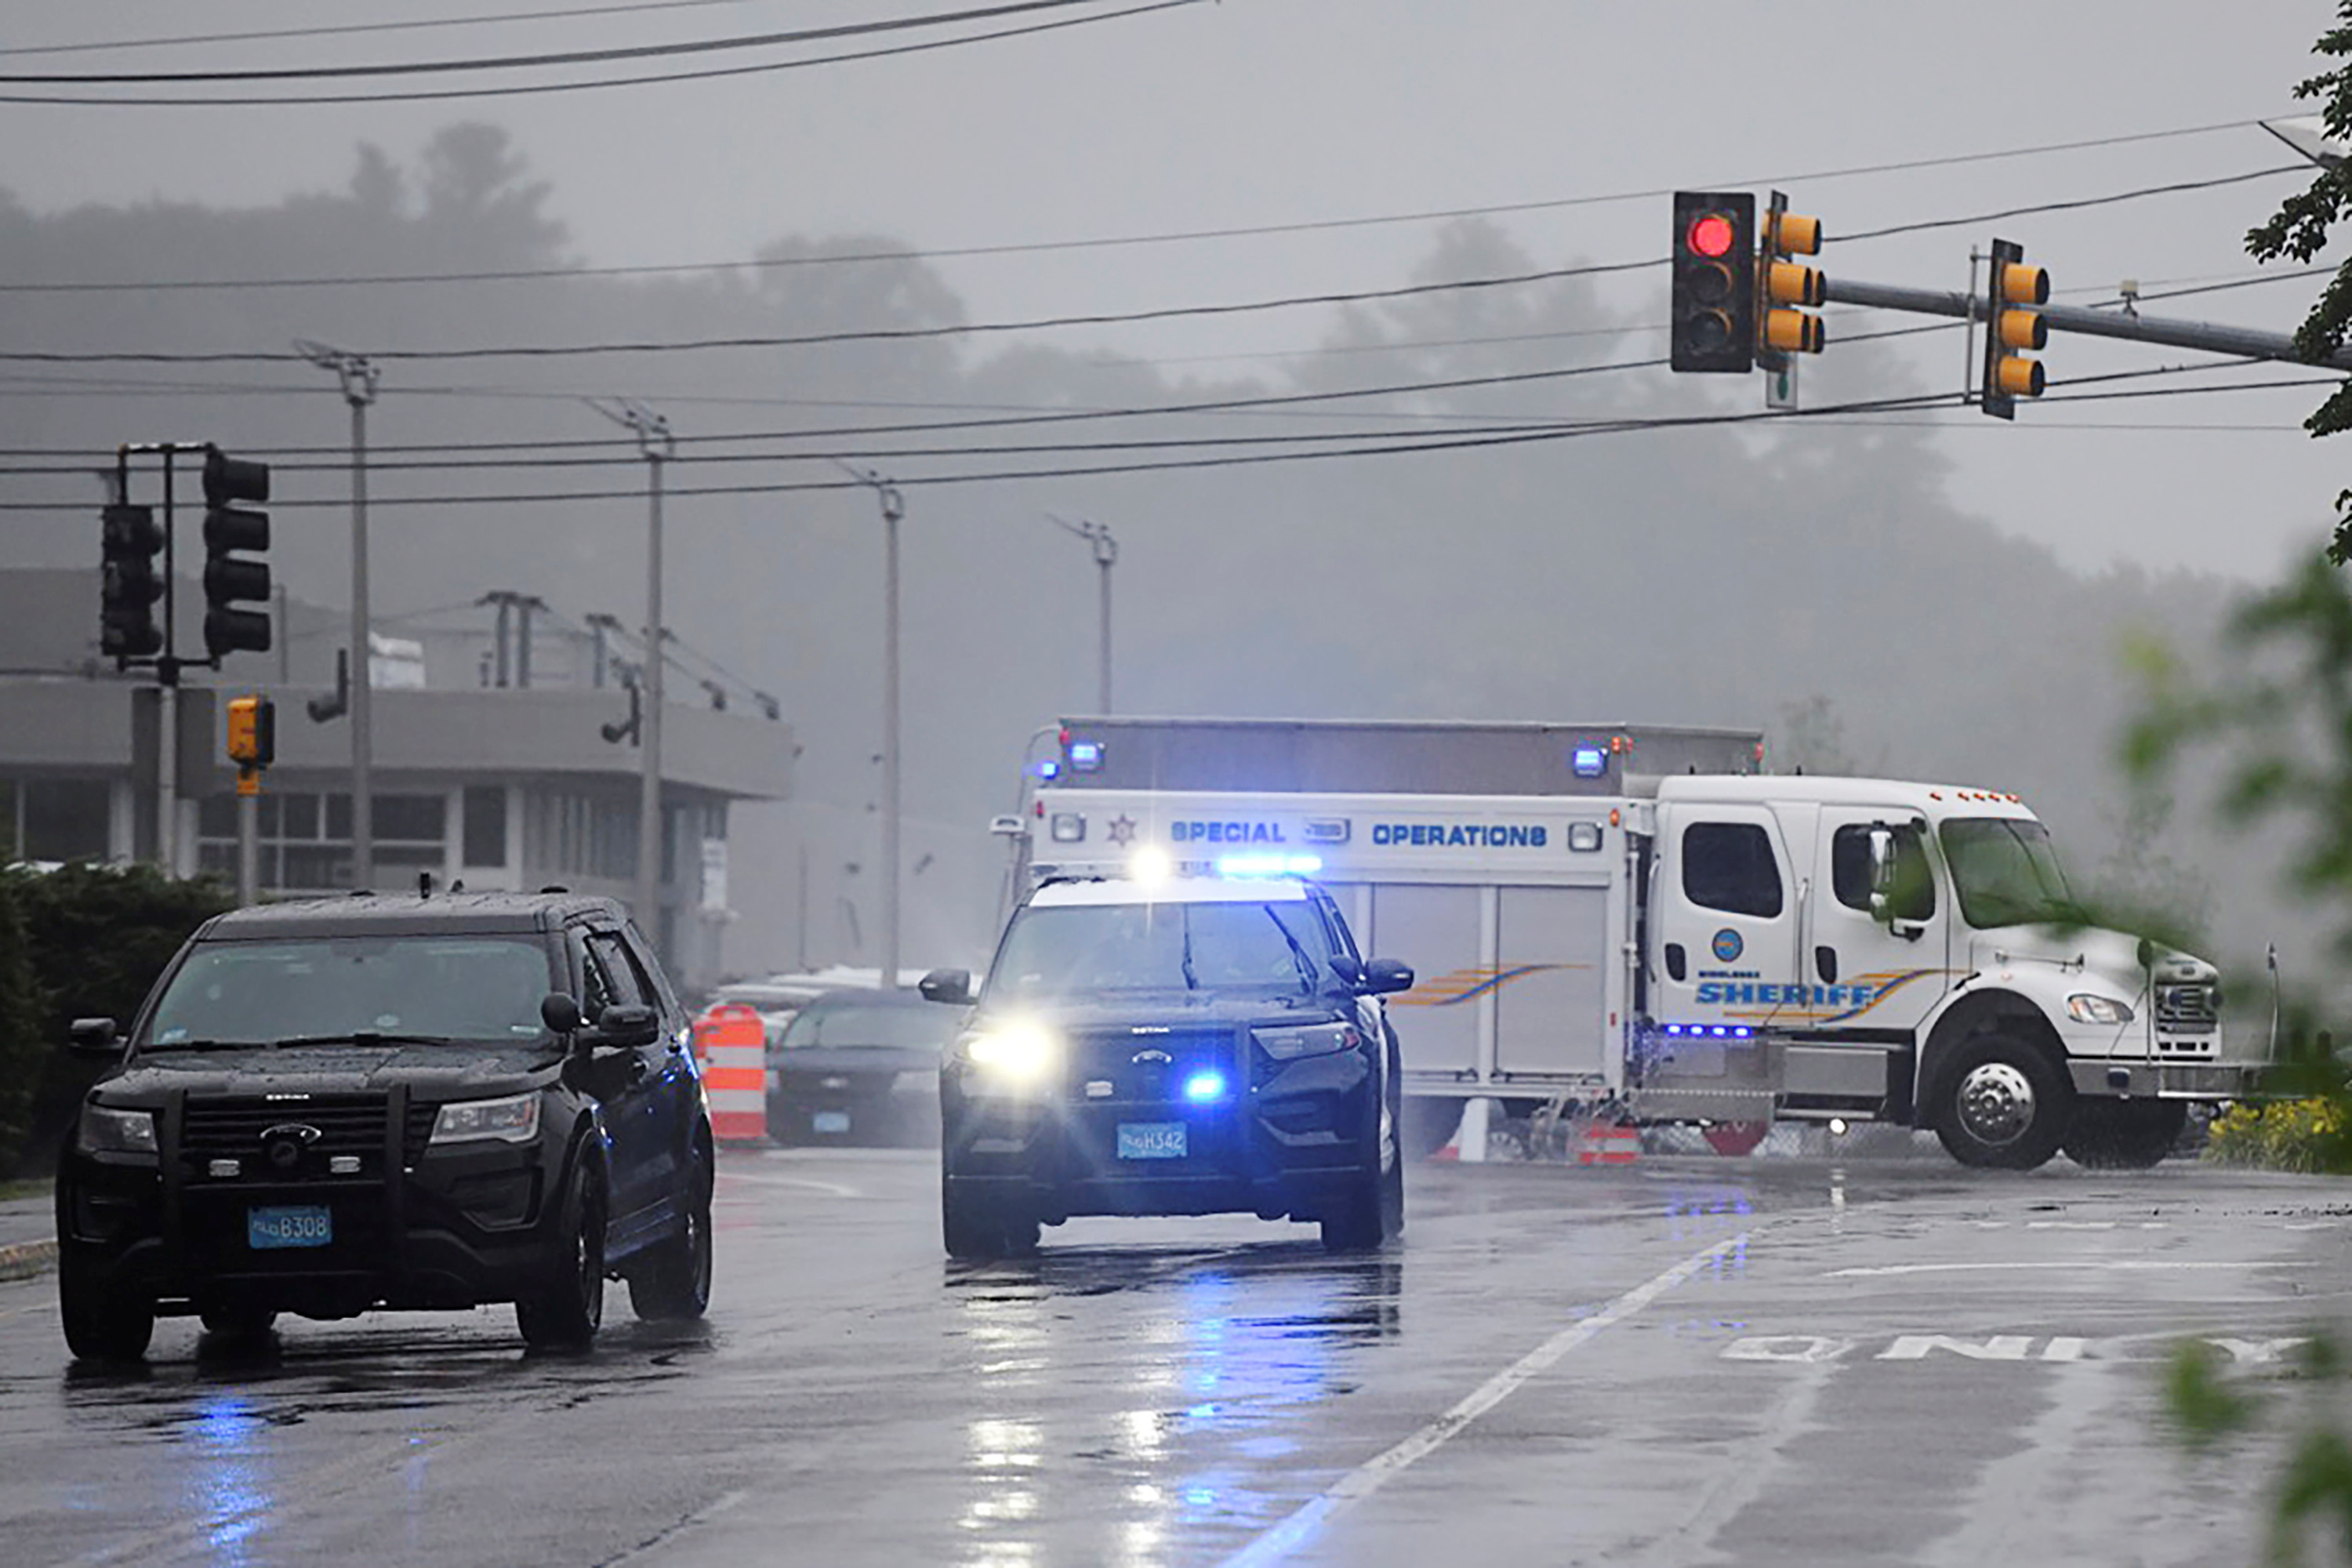 A Special Operations unit arrives after state police announced they were conducting a search for armed persons following a traffic stop in Wakefield, Massachusetts, U.S. July 3, 2021.  REUTERS/Faith Ninivaggi